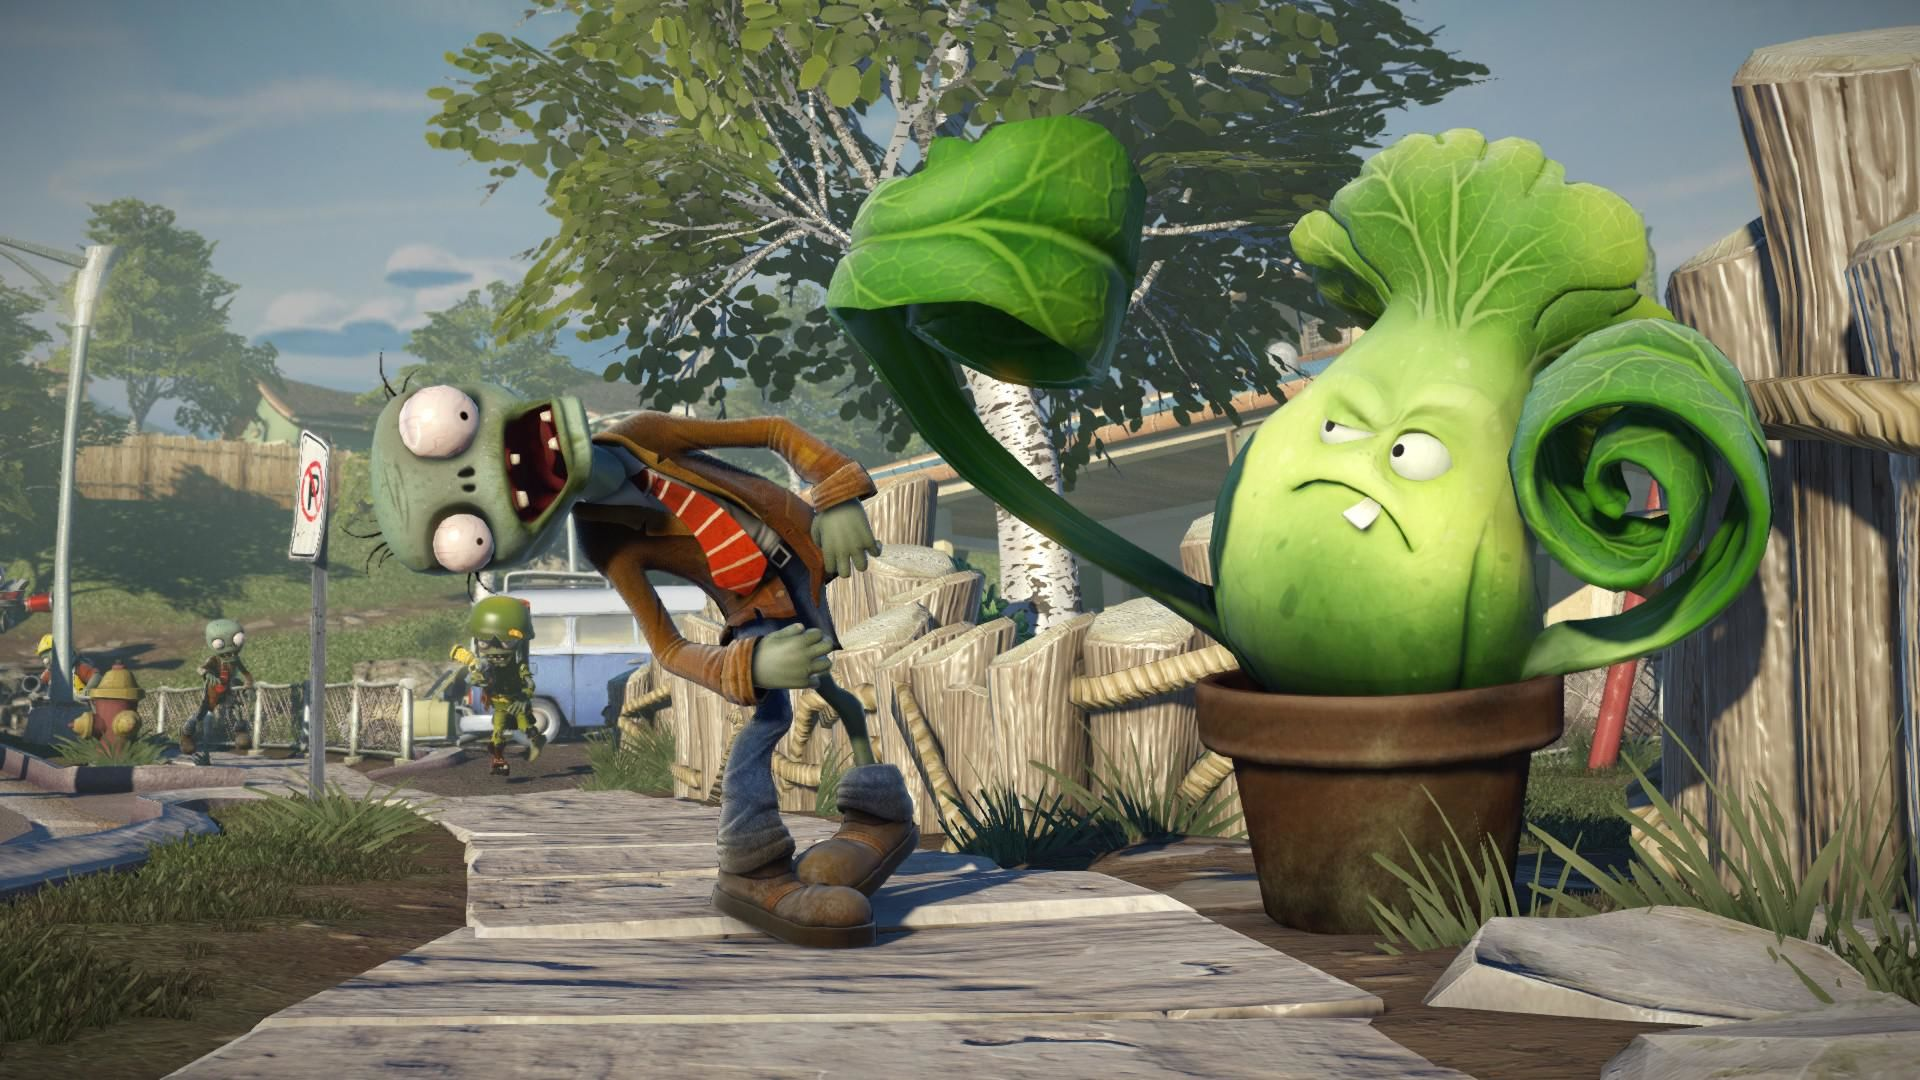 Pvz garden warfare matchmaking failed